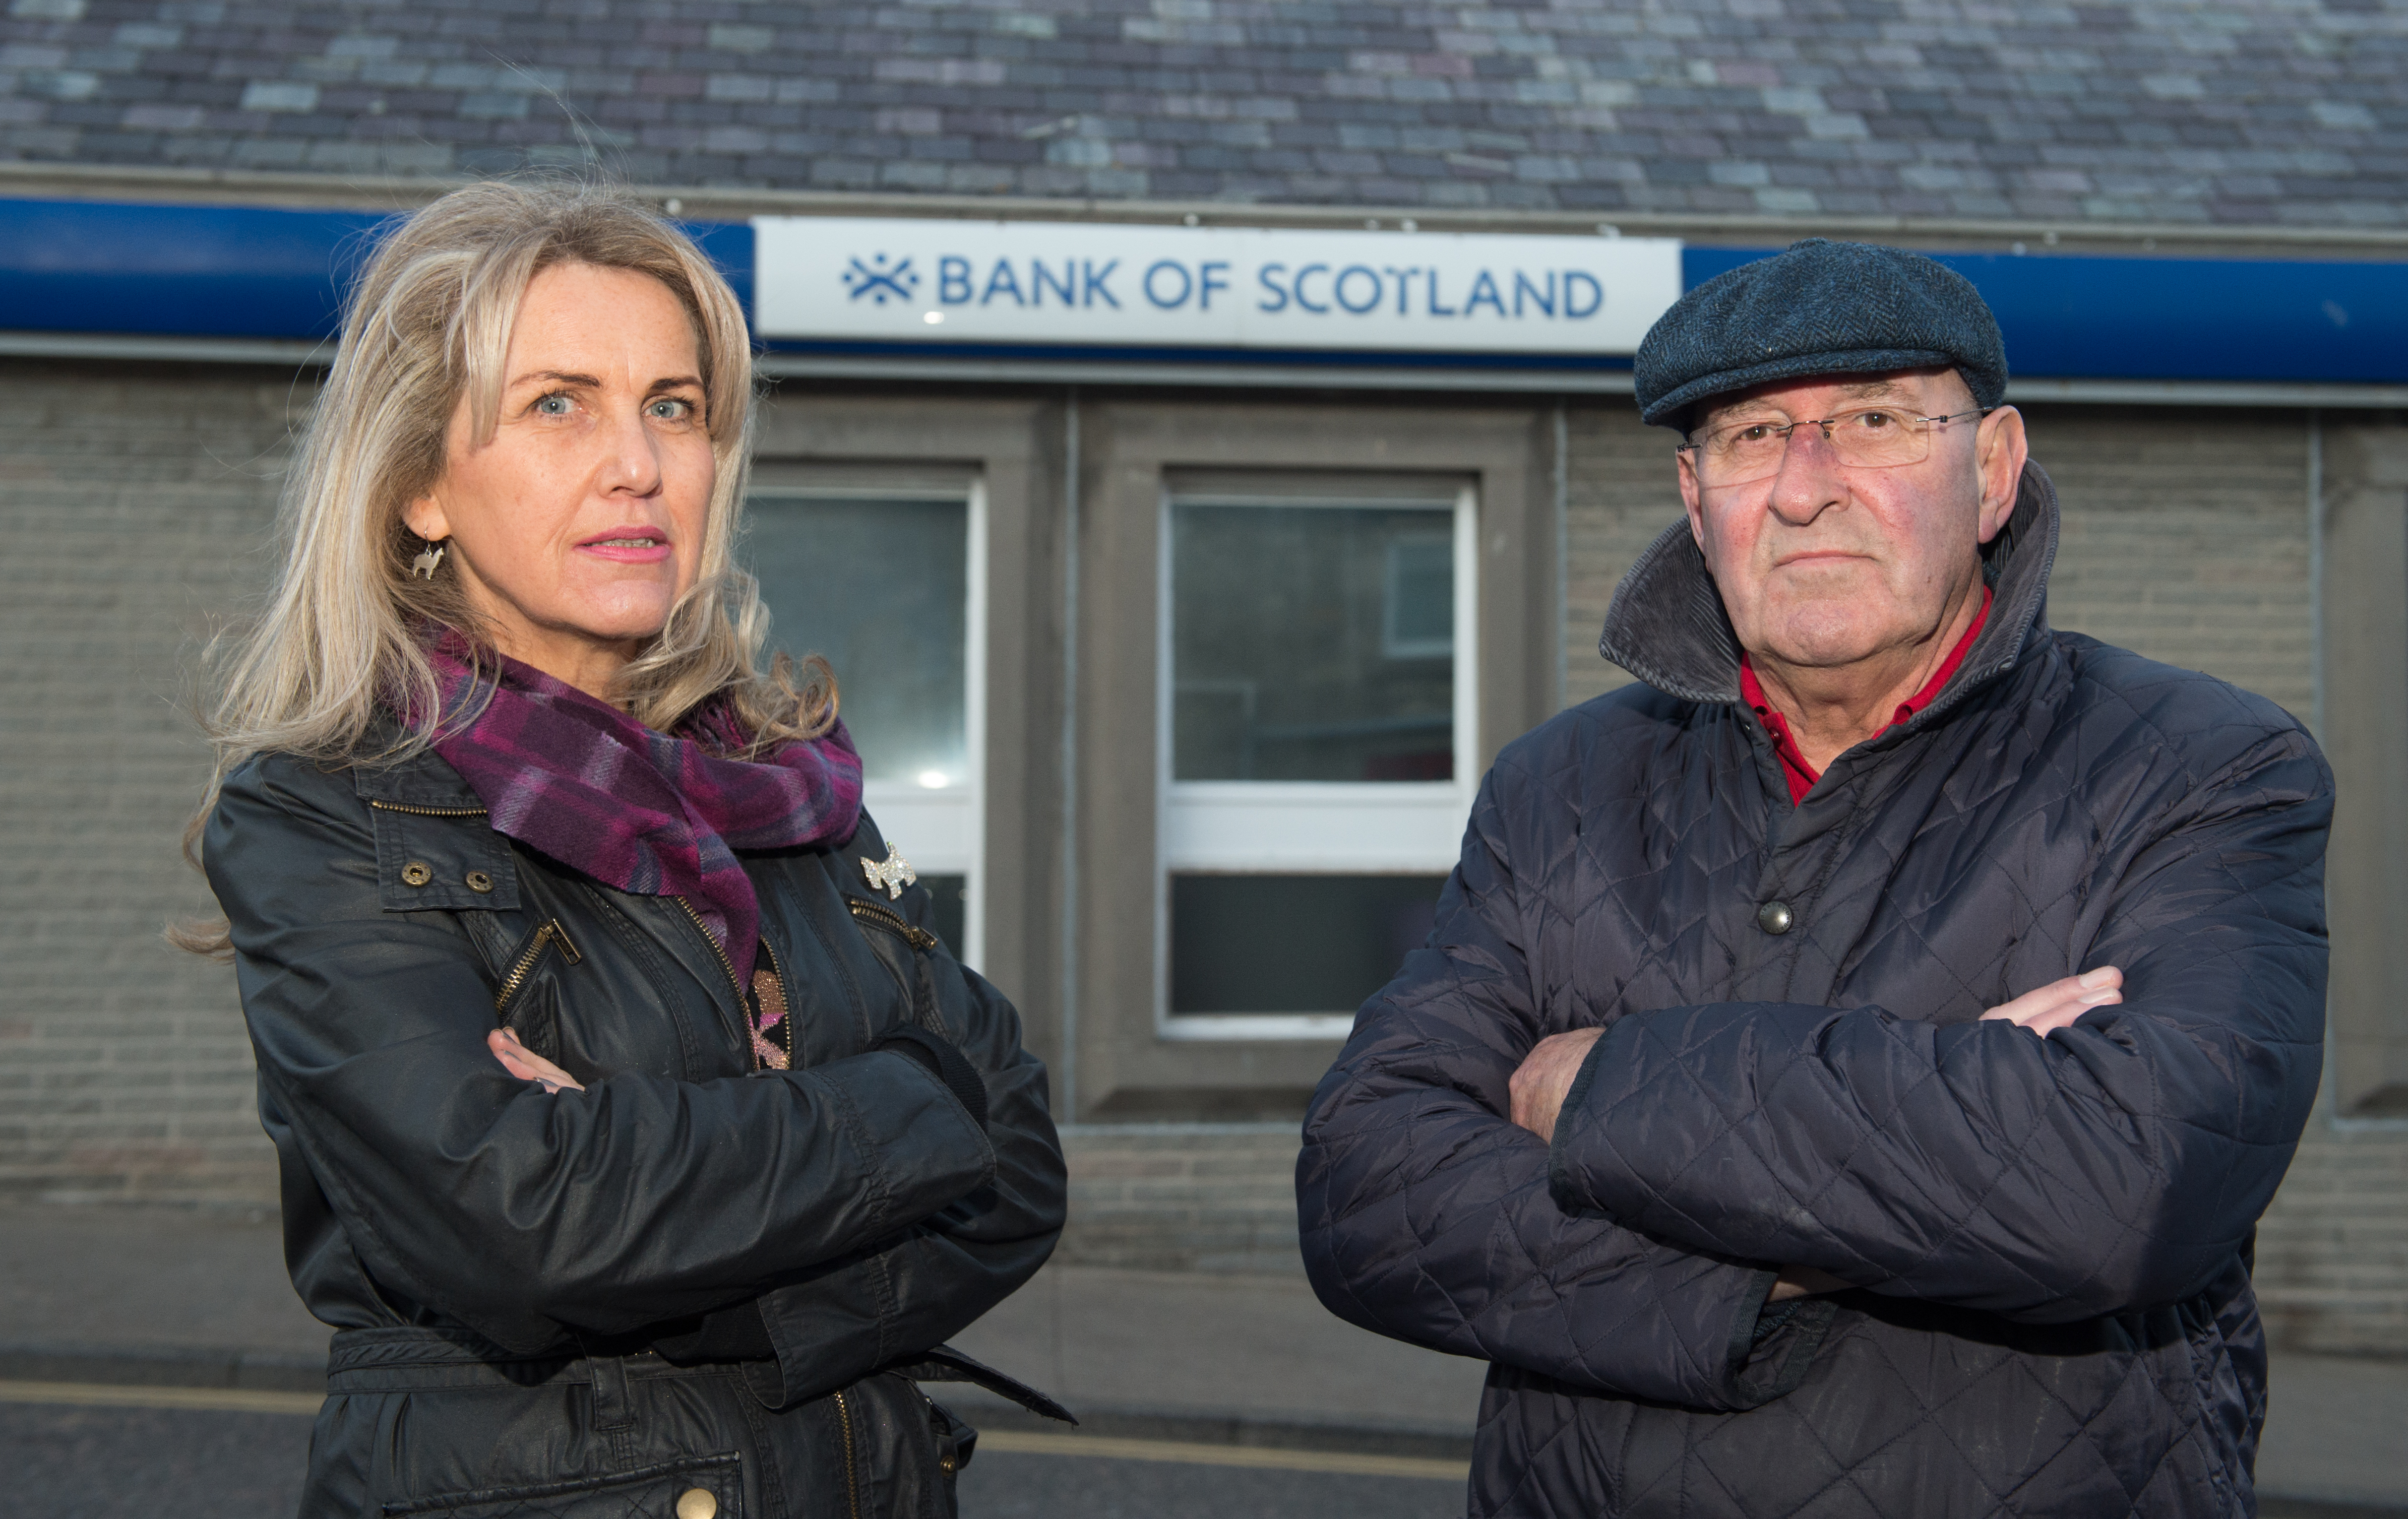 Lossiemouth Community Council vice-chairwoman Carolle Ralph and chairman Mike Mulholland outside Lossiemouth's Bank of Scotland branch.